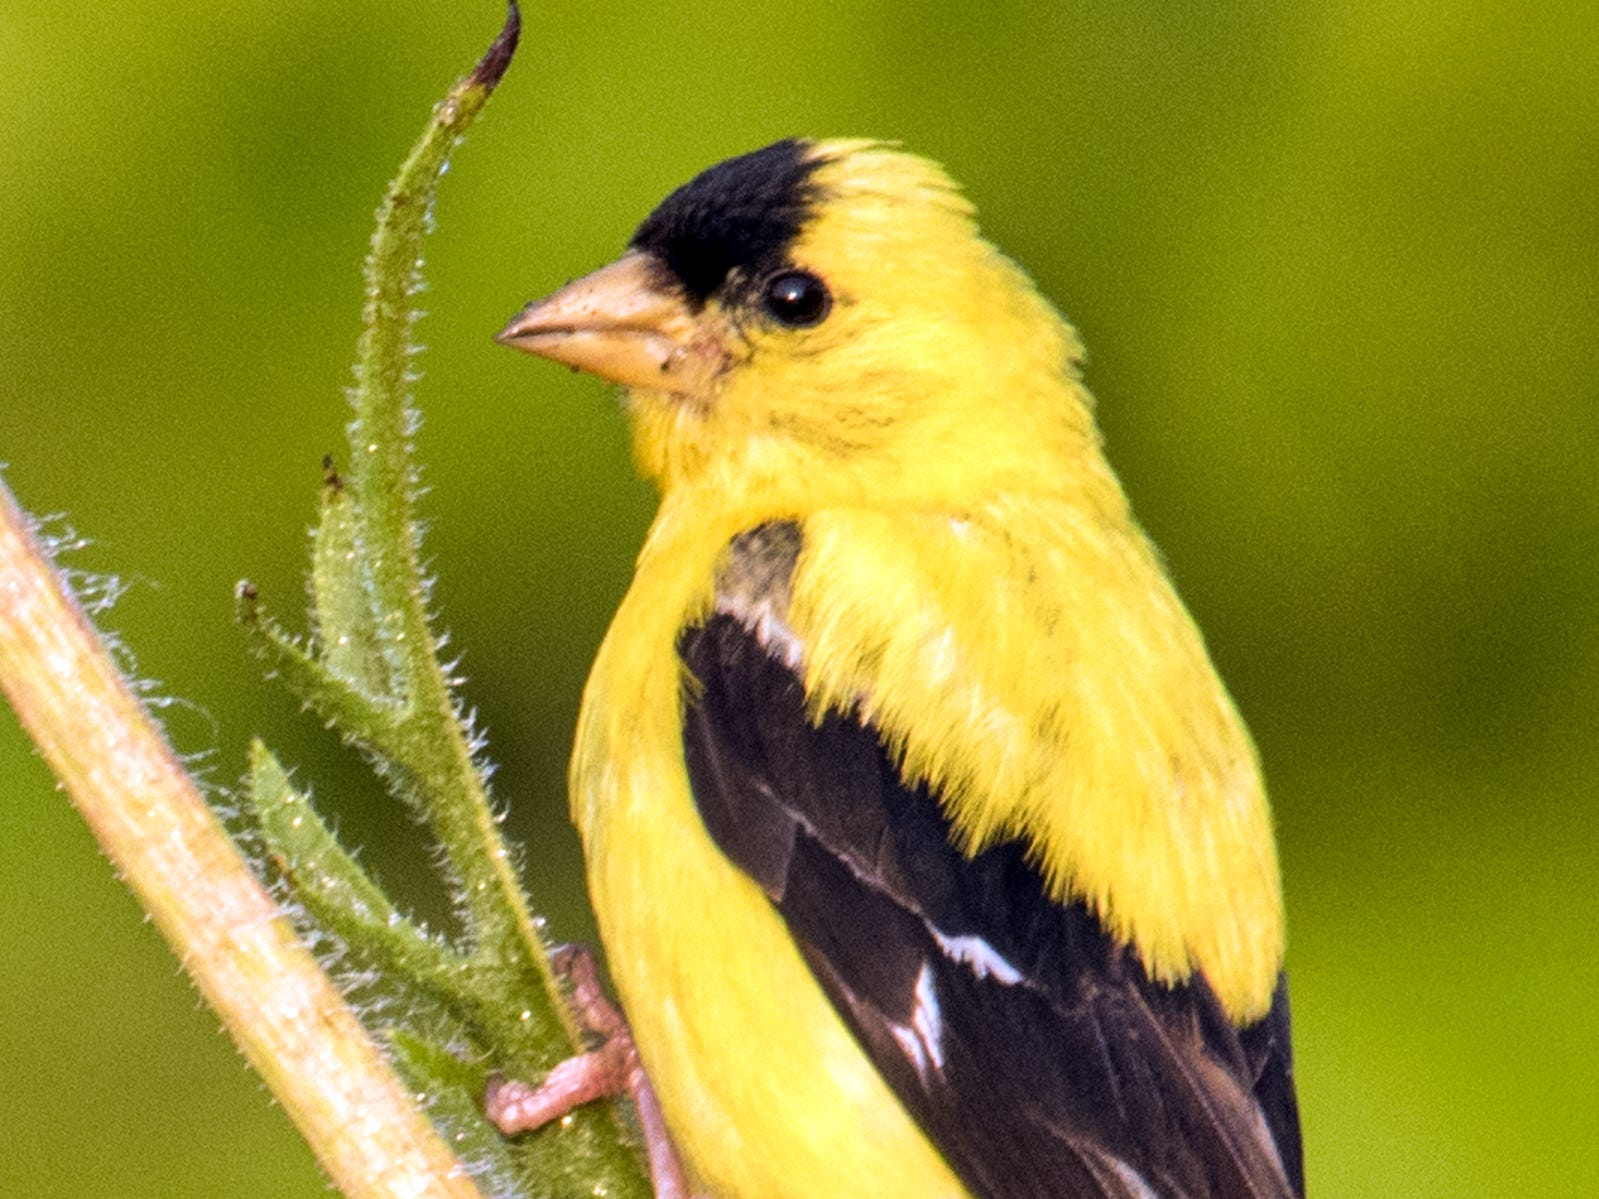 Good-natured goldfinches fly in a distinctive pattern and are a joy to watch; lure these bright birds to your yard with coneflowers and other native plants.